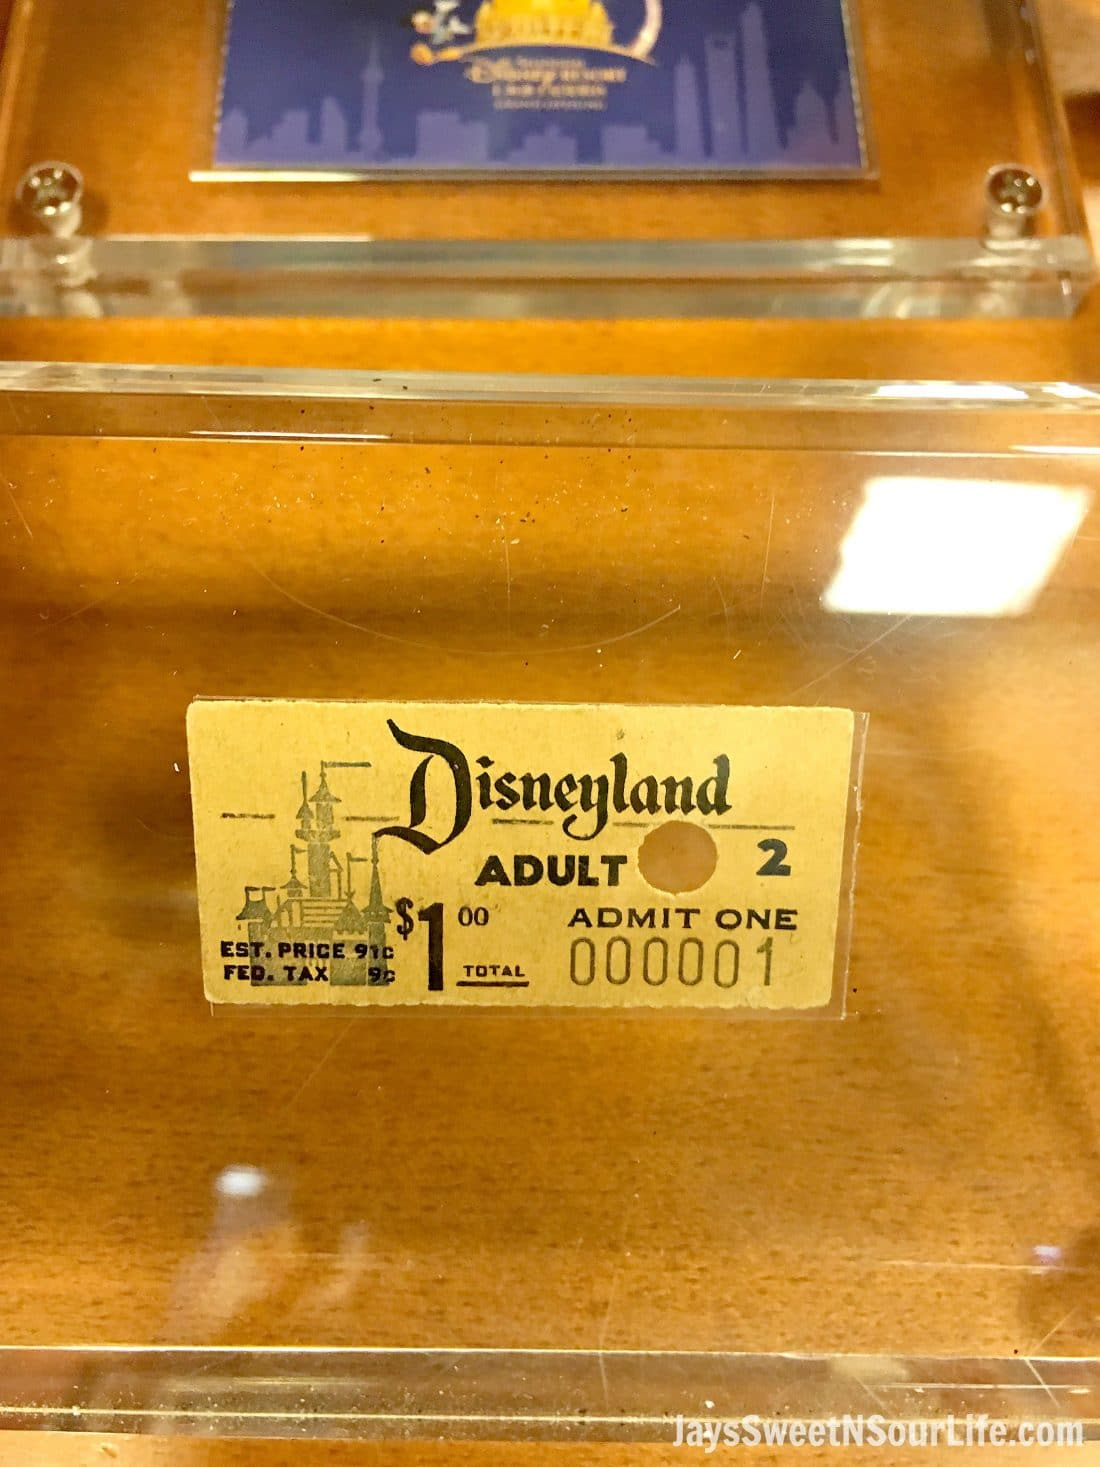 Sail the high seas with me as I adventure to Disneyland and ride the Pirate of the Caribbean ride for the first time in my life! Also, view my special visit to the Walt Disney Archive's where I got to hold Walt's golden globe award.